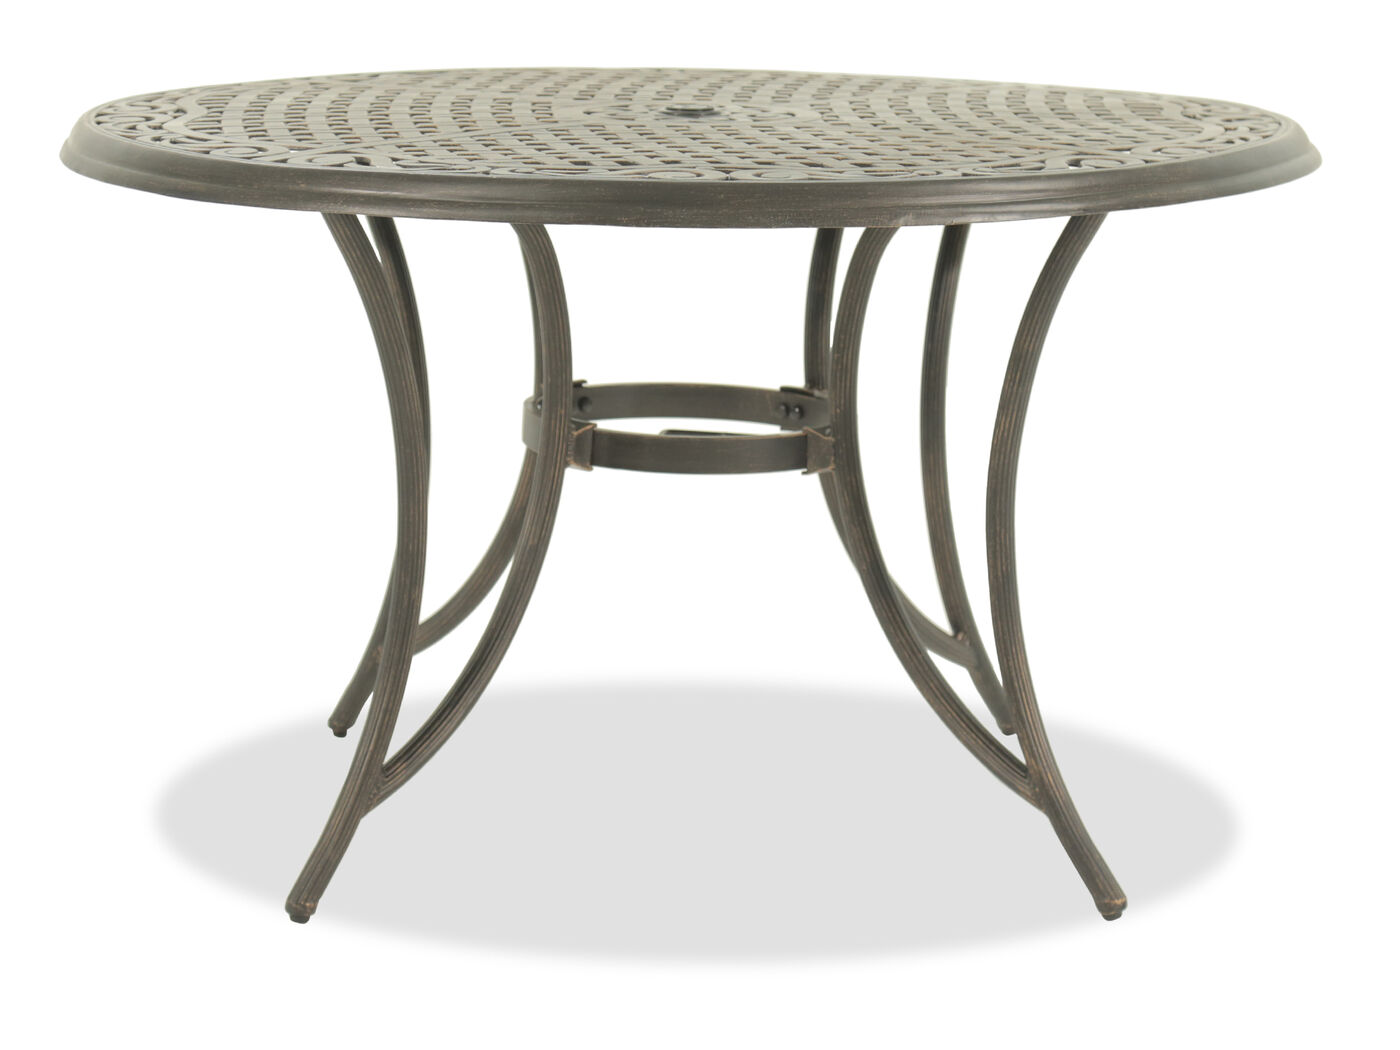 Mathis Brothers Patio Furniture world source southridge round dining table | mathis brothers furniture